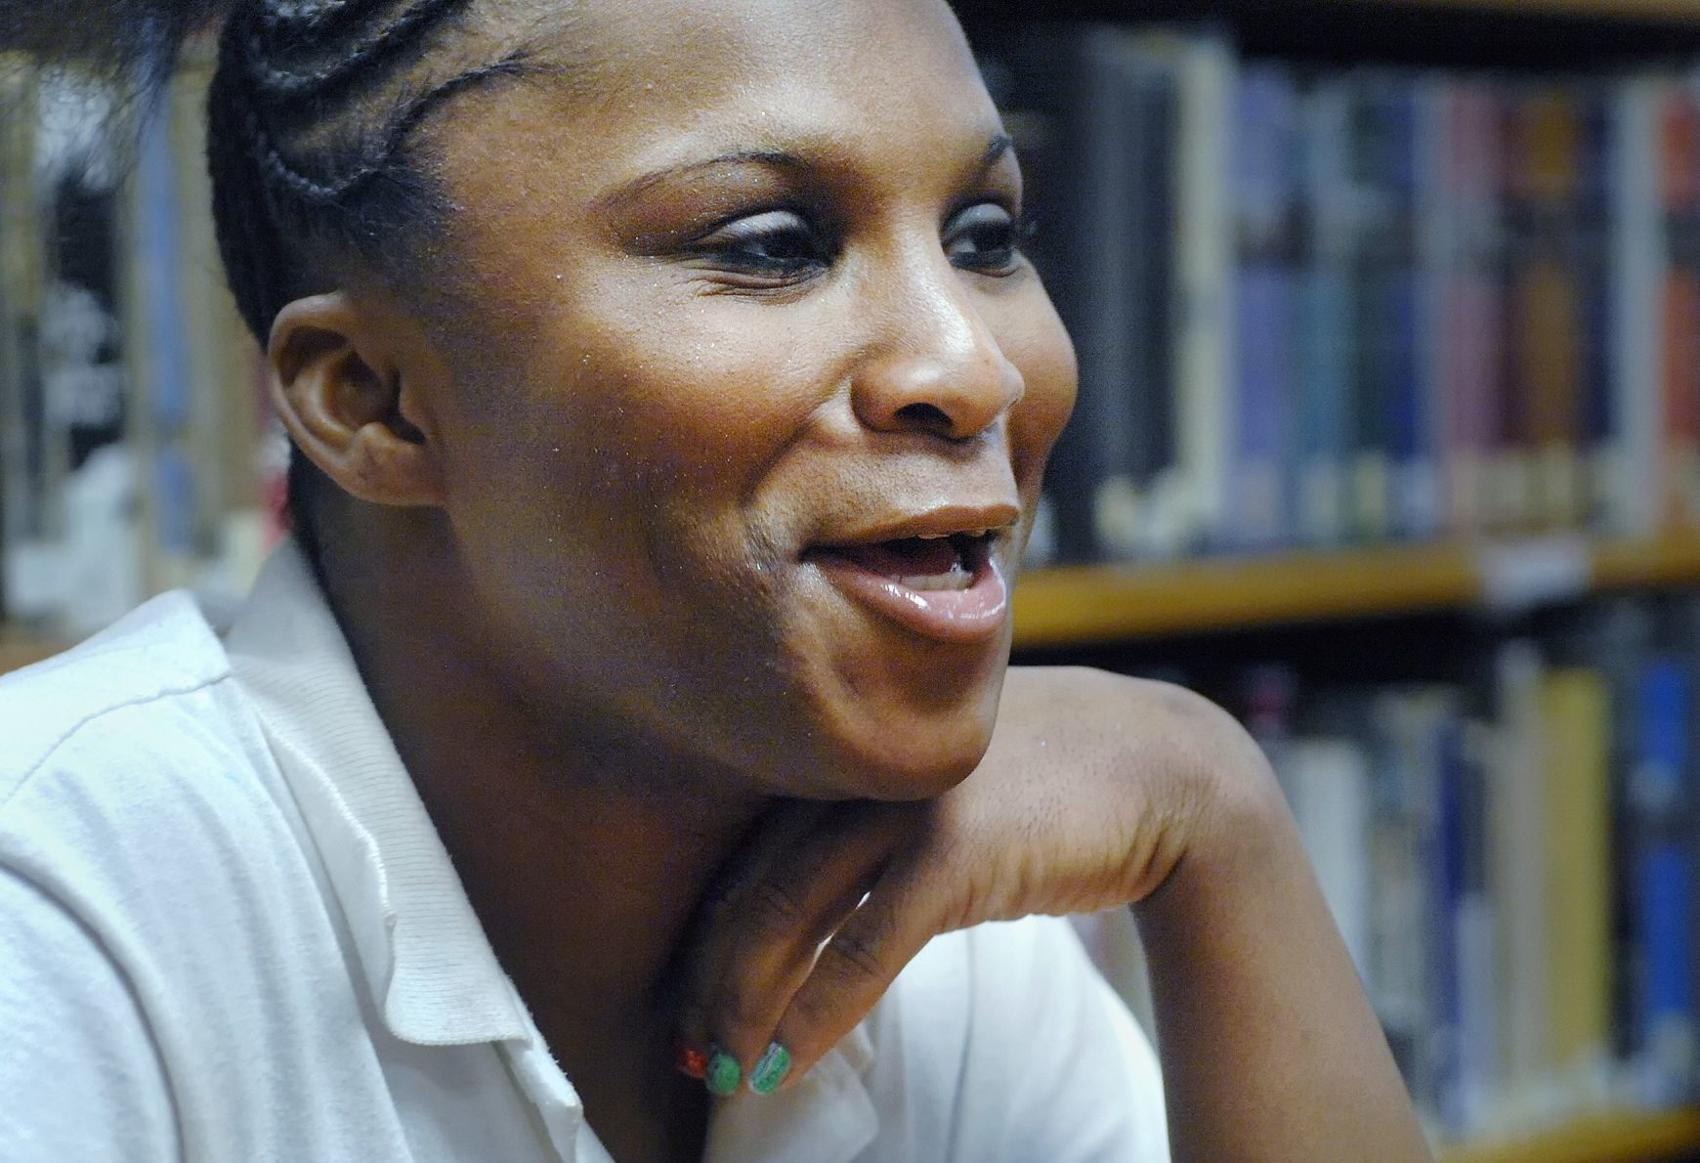 Embracing her identity: Transgender inmate fights for change, education